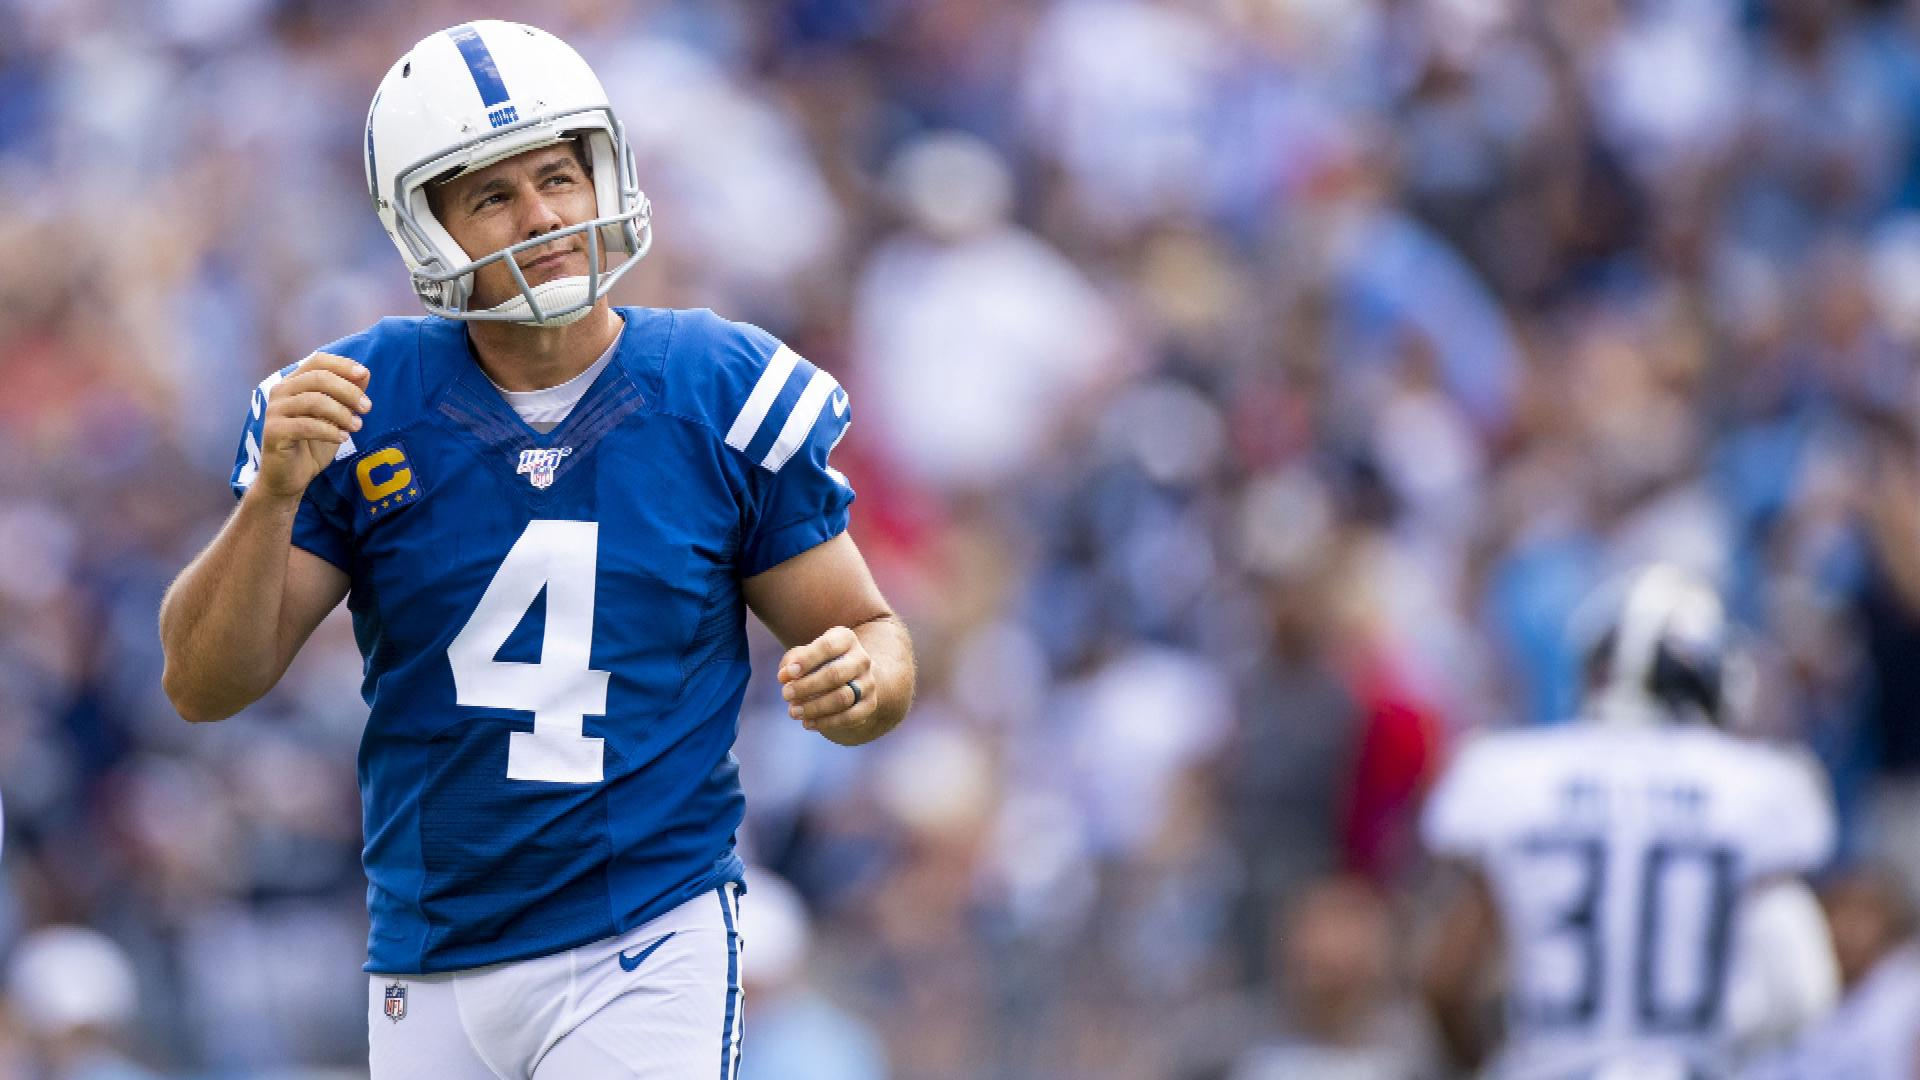 Adam Vinatieri struggles for Colts vs. Titans as retirement talk